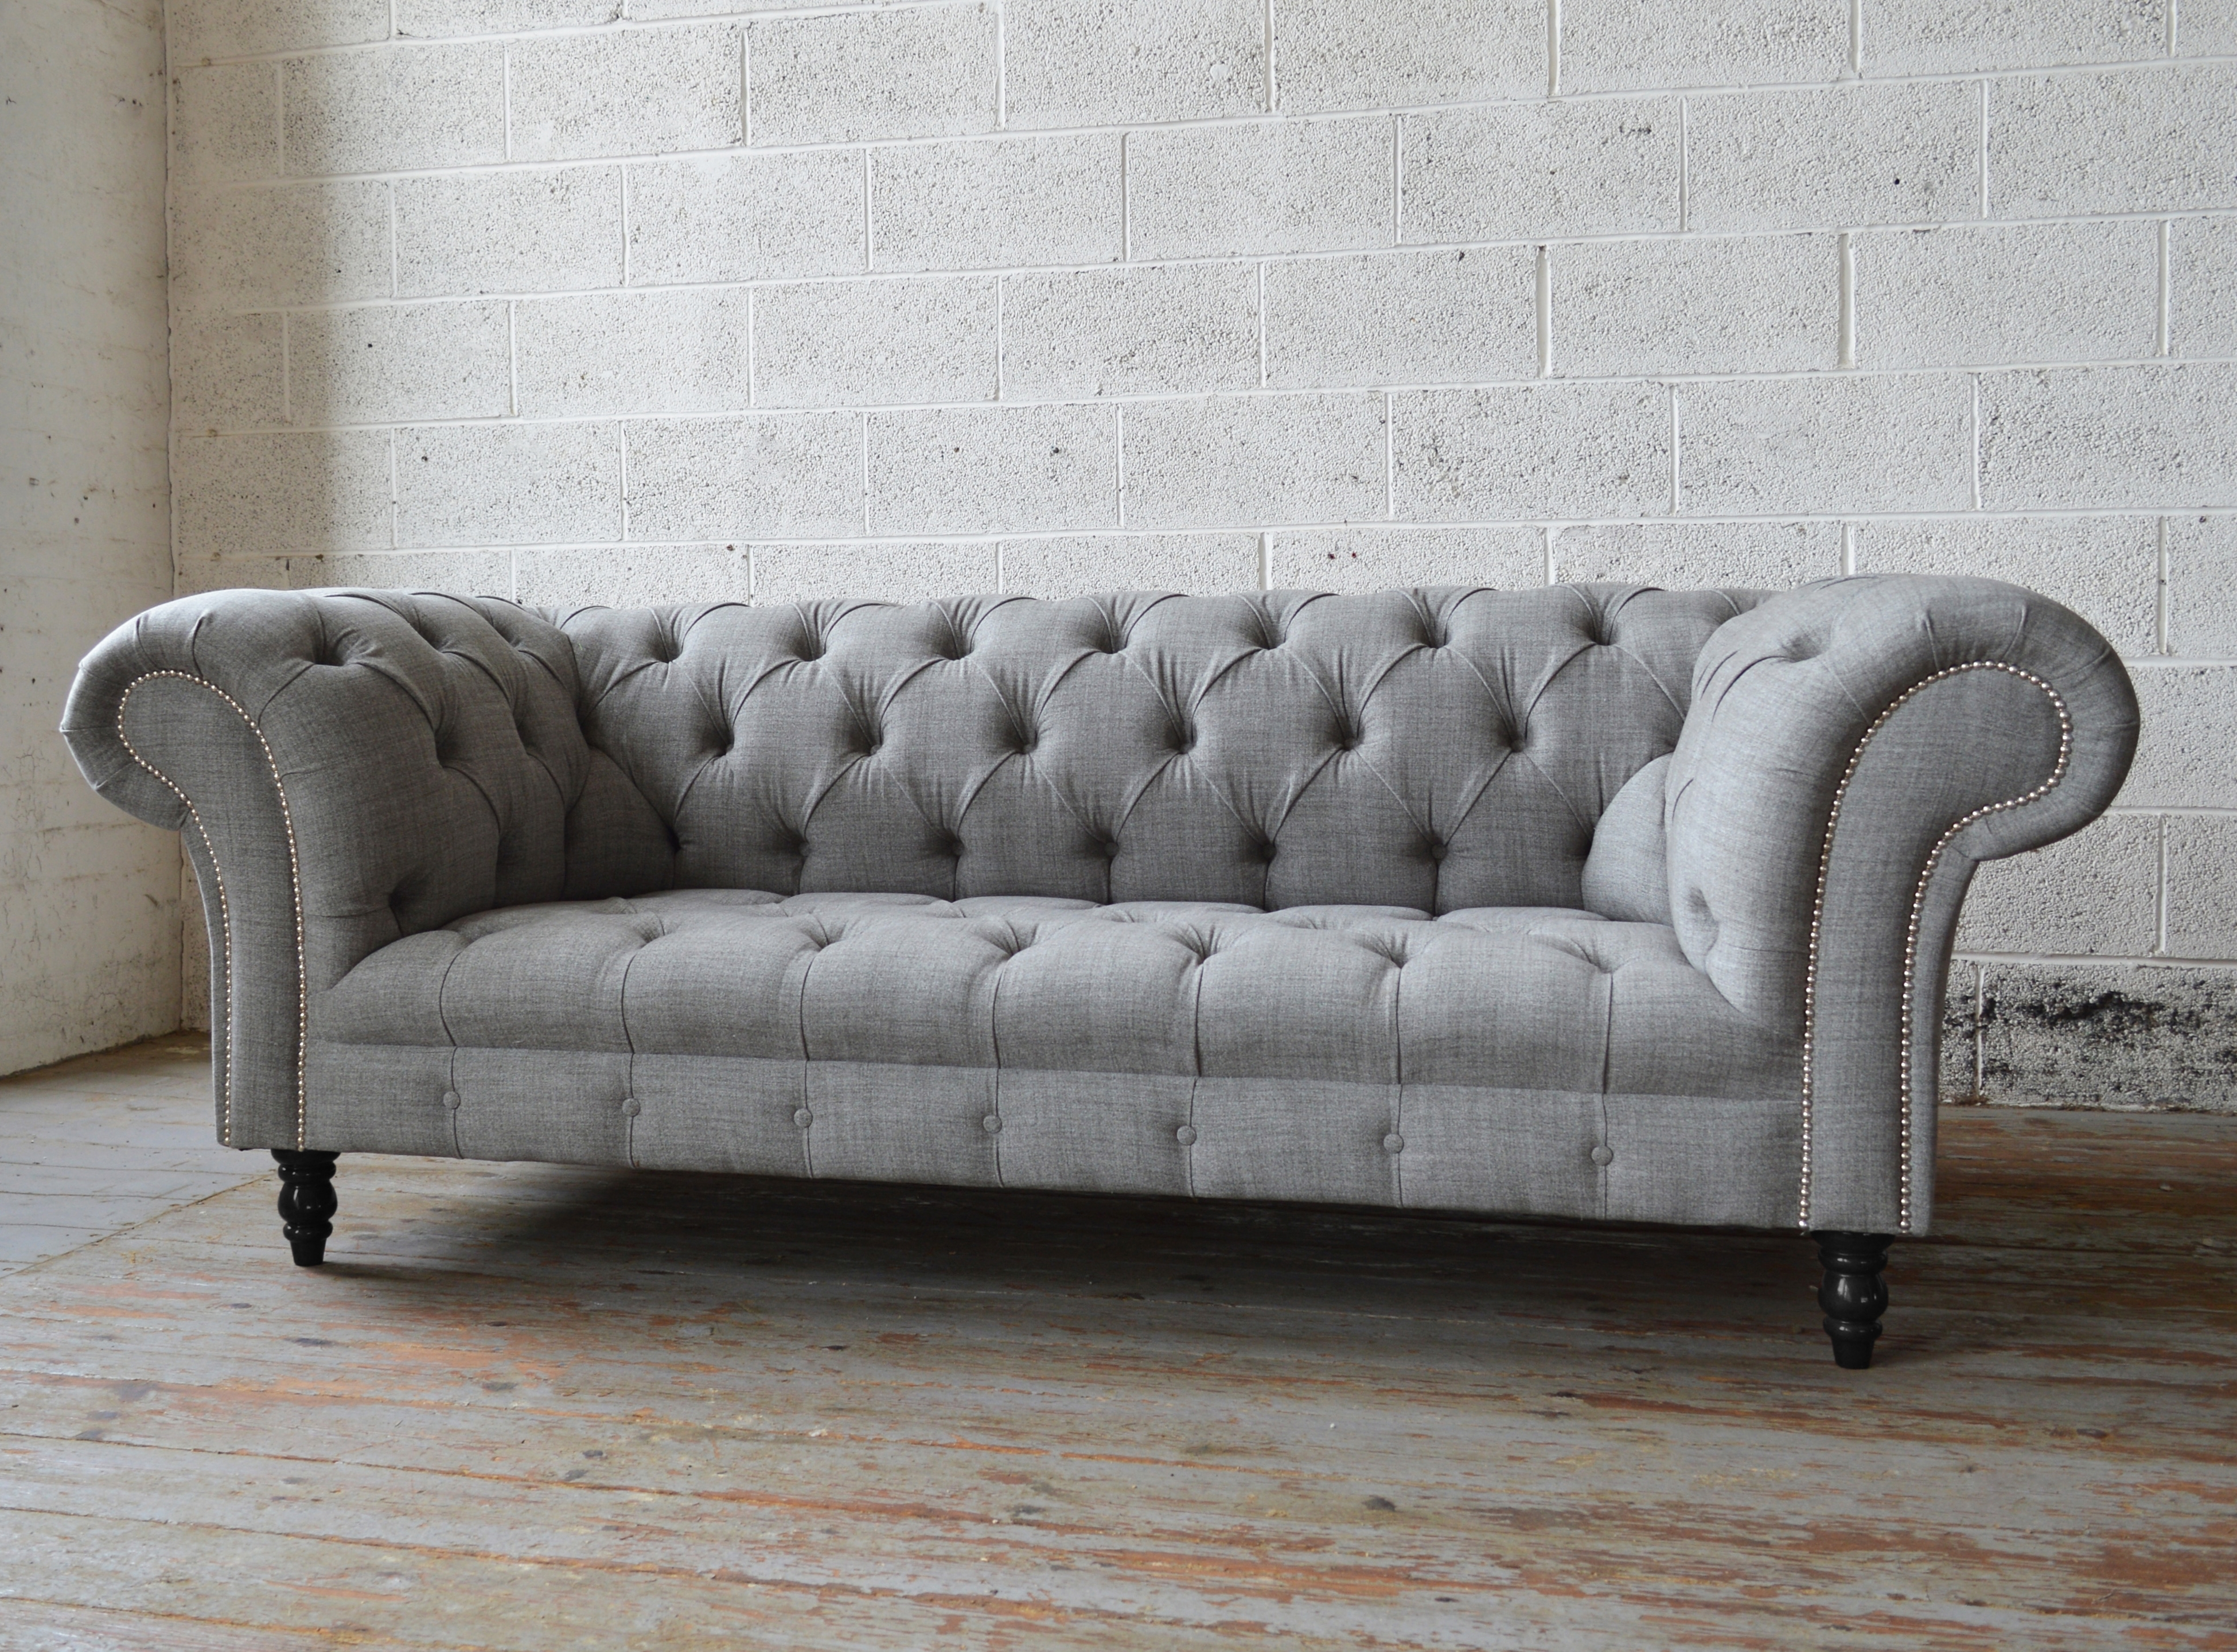 Tufted Leather Chesterfield Sofas Regarding Most Popular Sofas Amazing Grey Leather Chesterfield Sofa Blue Inside Light (View 11 of 20)